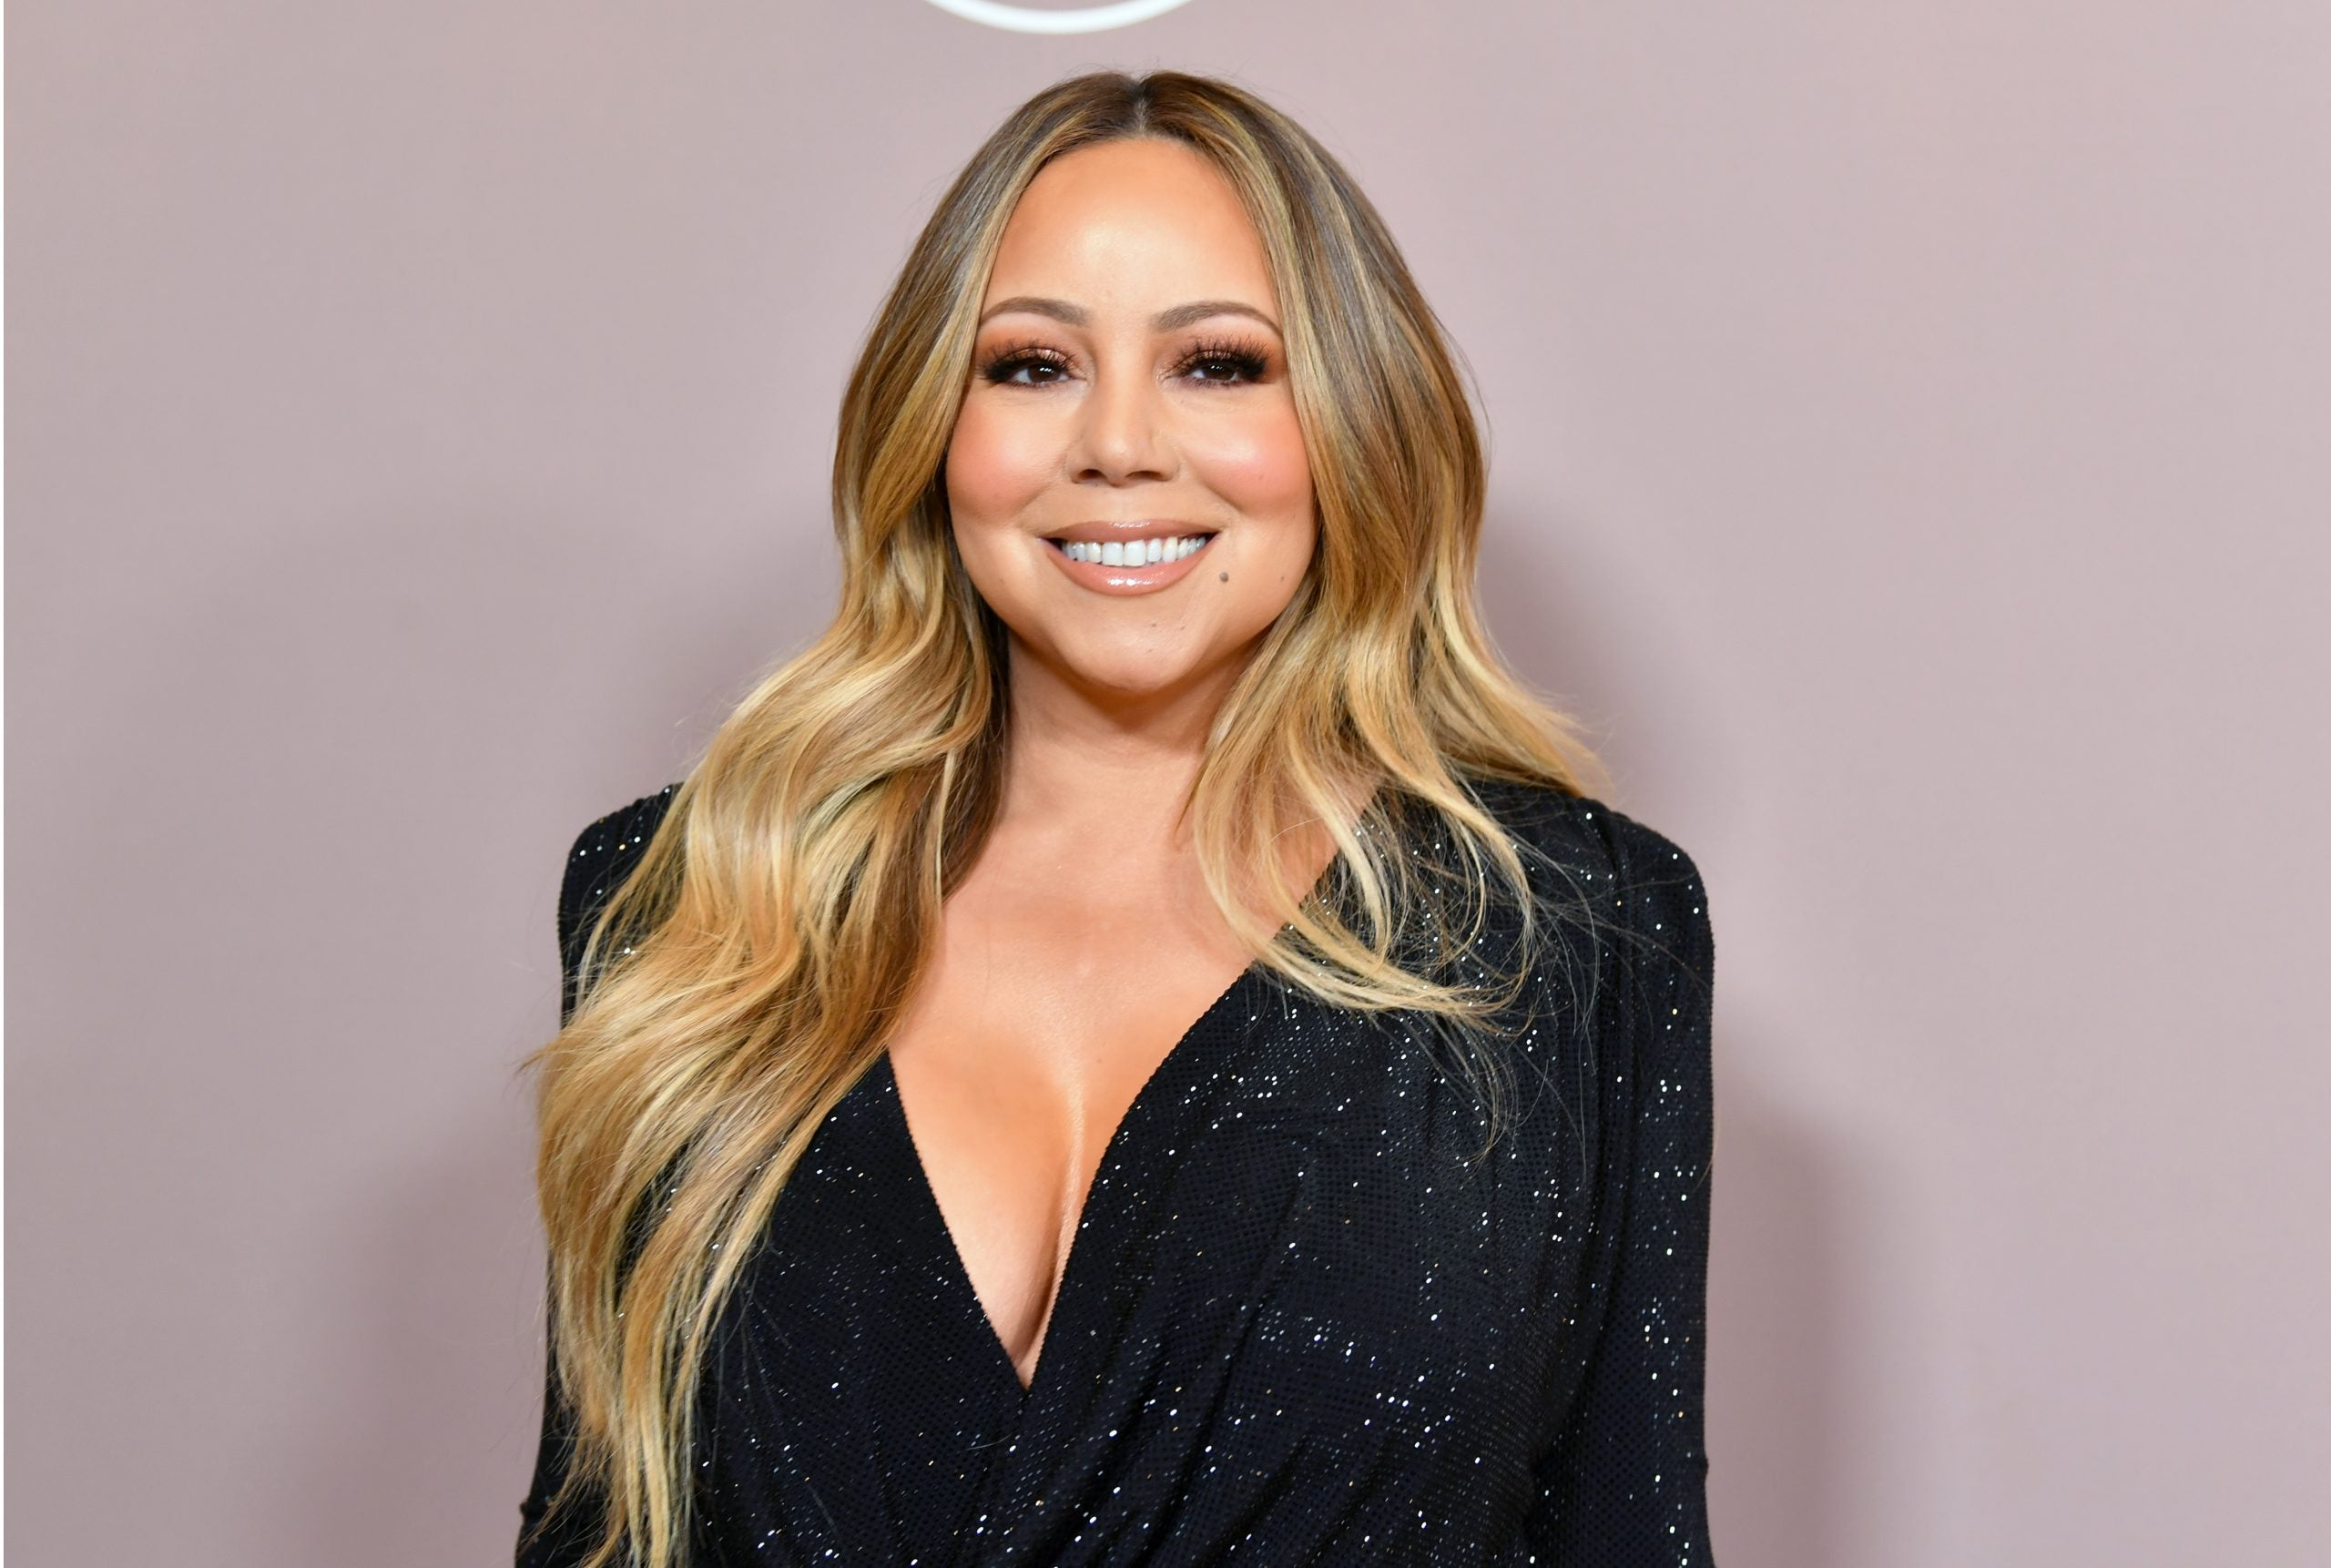 Mariah Carey To Release Memoir 'The Meaning of… Essence